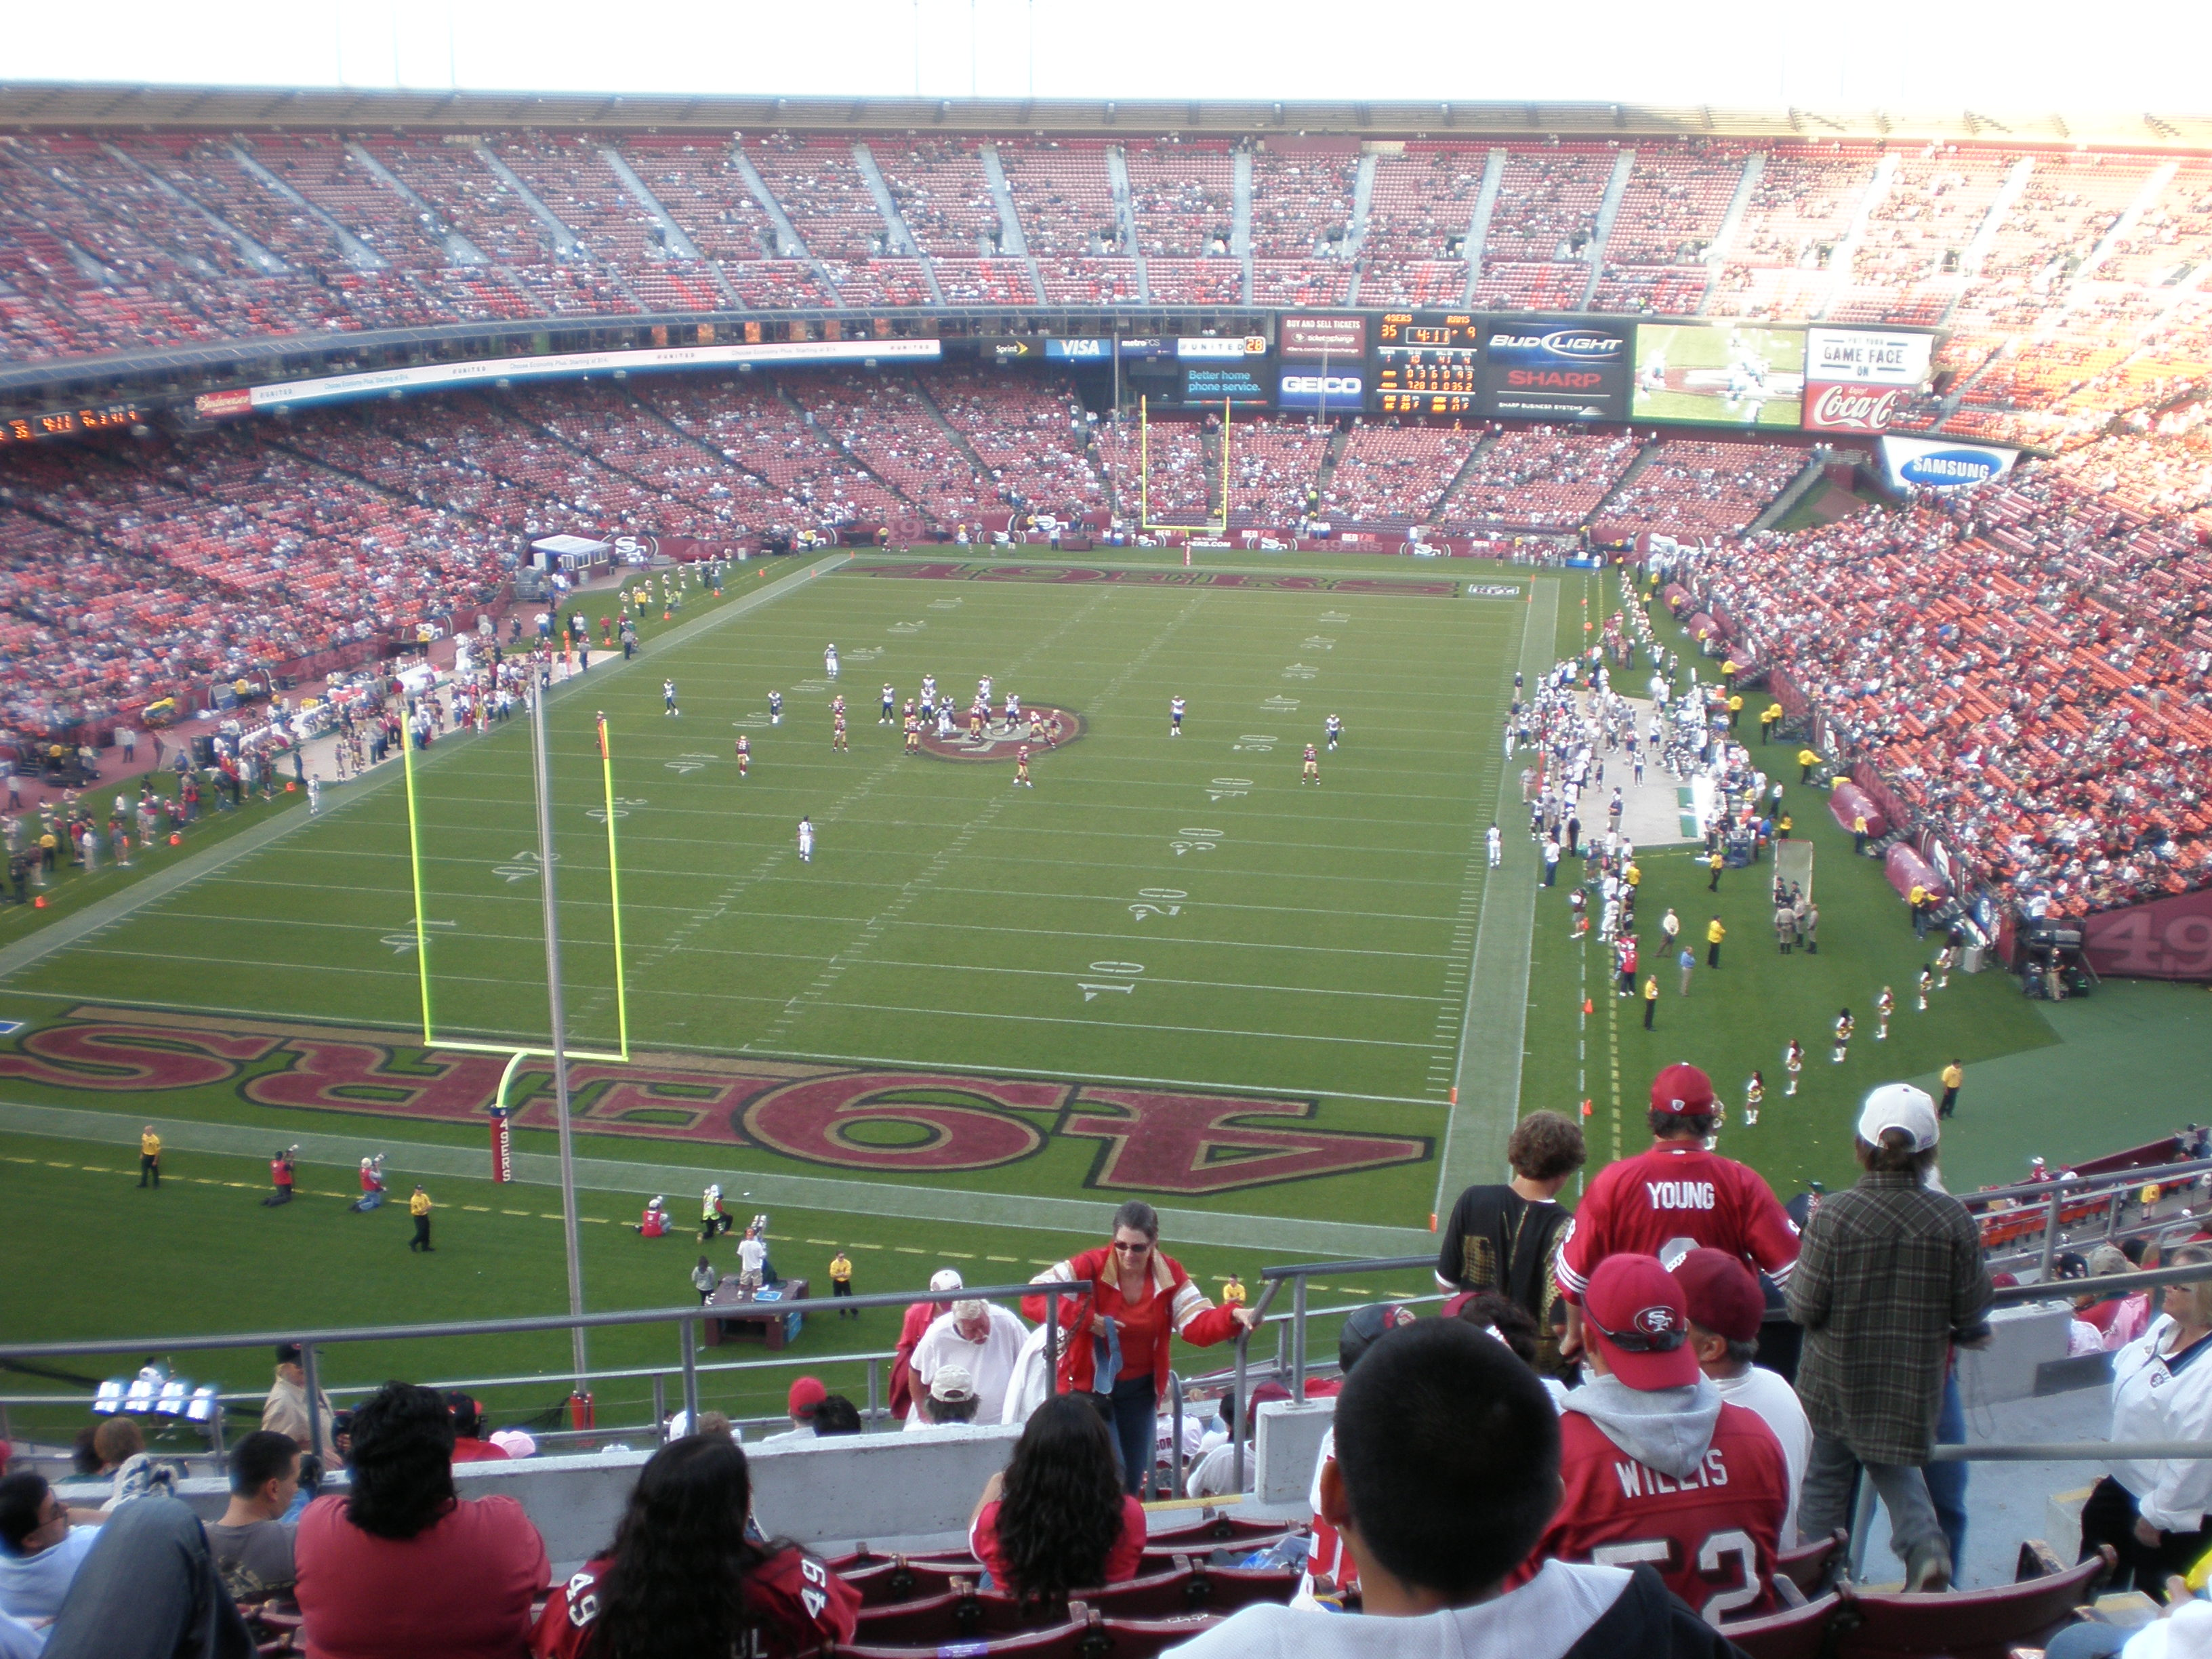 File Candlestick Park During Rams At 49ers 2008 11 16 Jpg